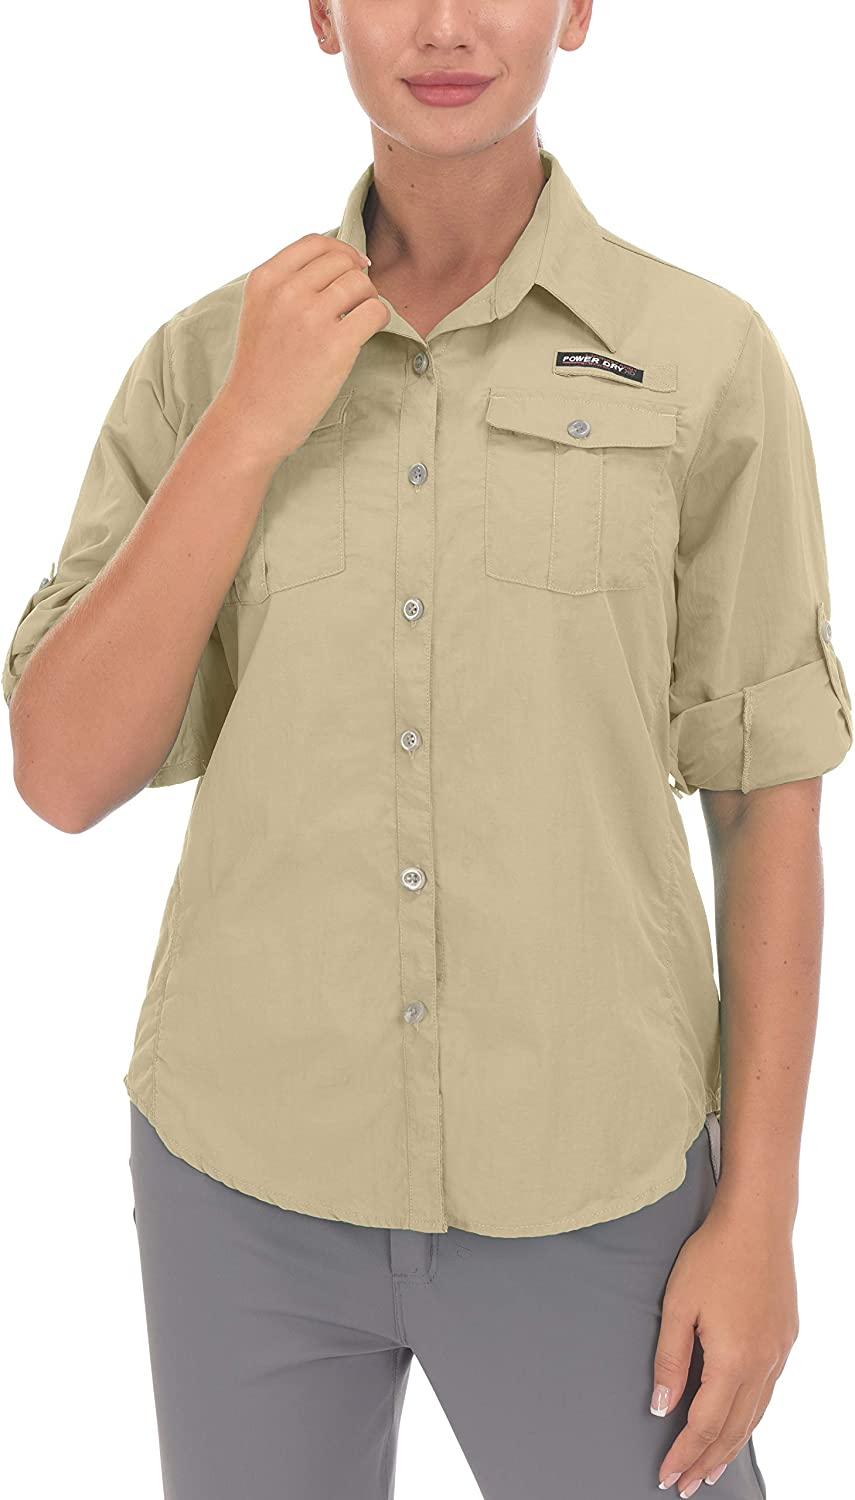 Max 71% OFF Little Donkey Andy Store Women's UPF 50+ Sle Long UV Protection Shirt